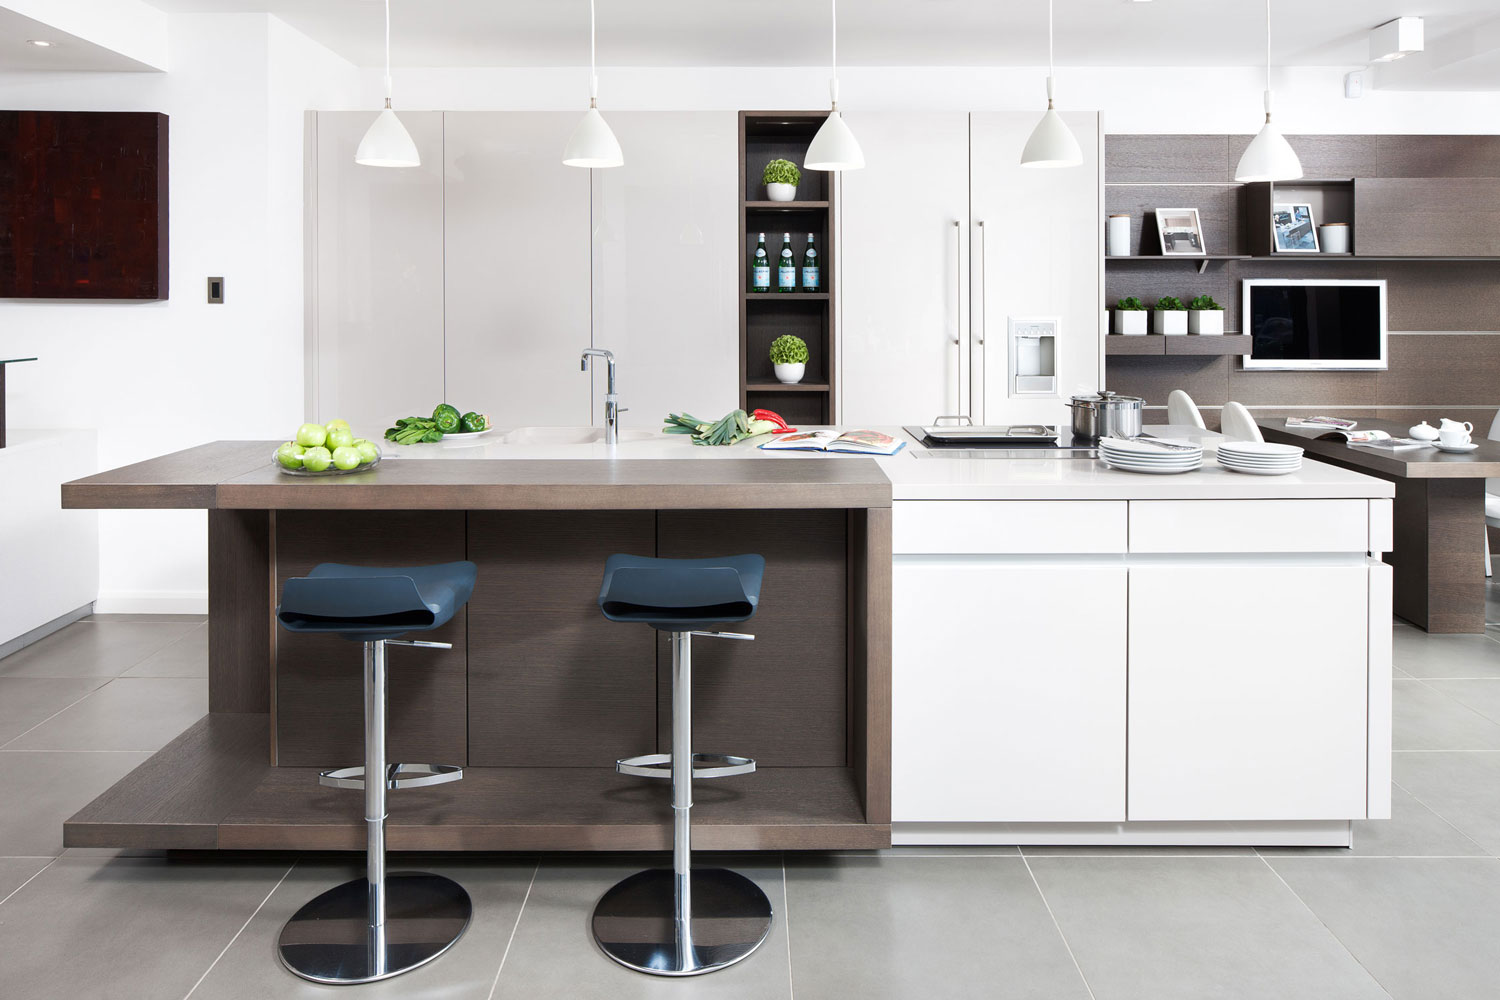 Kitchen Designers Glasgow | Kitchens International